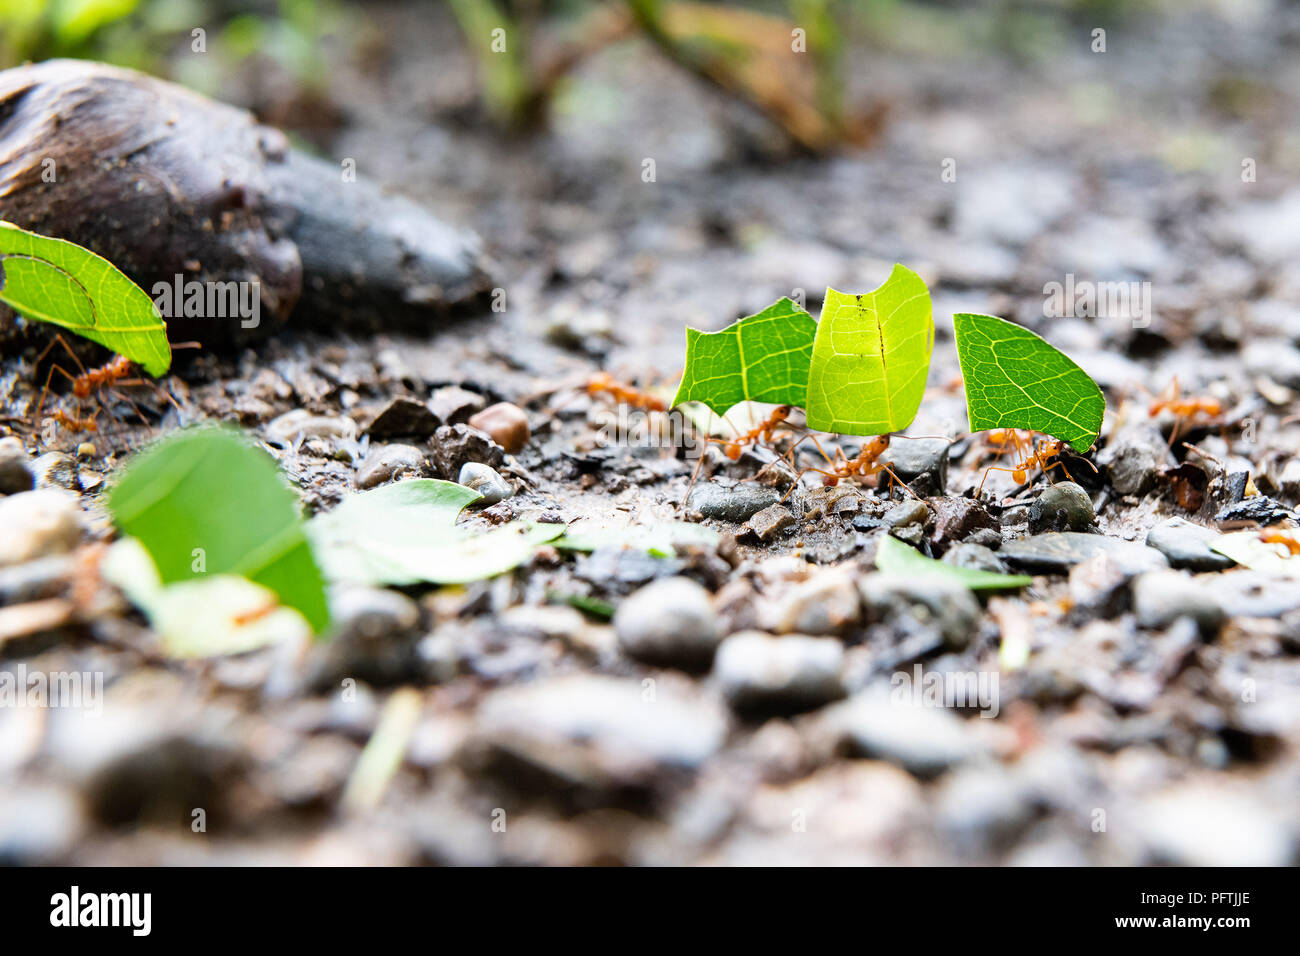 Ants carrying leaves Stock Photo